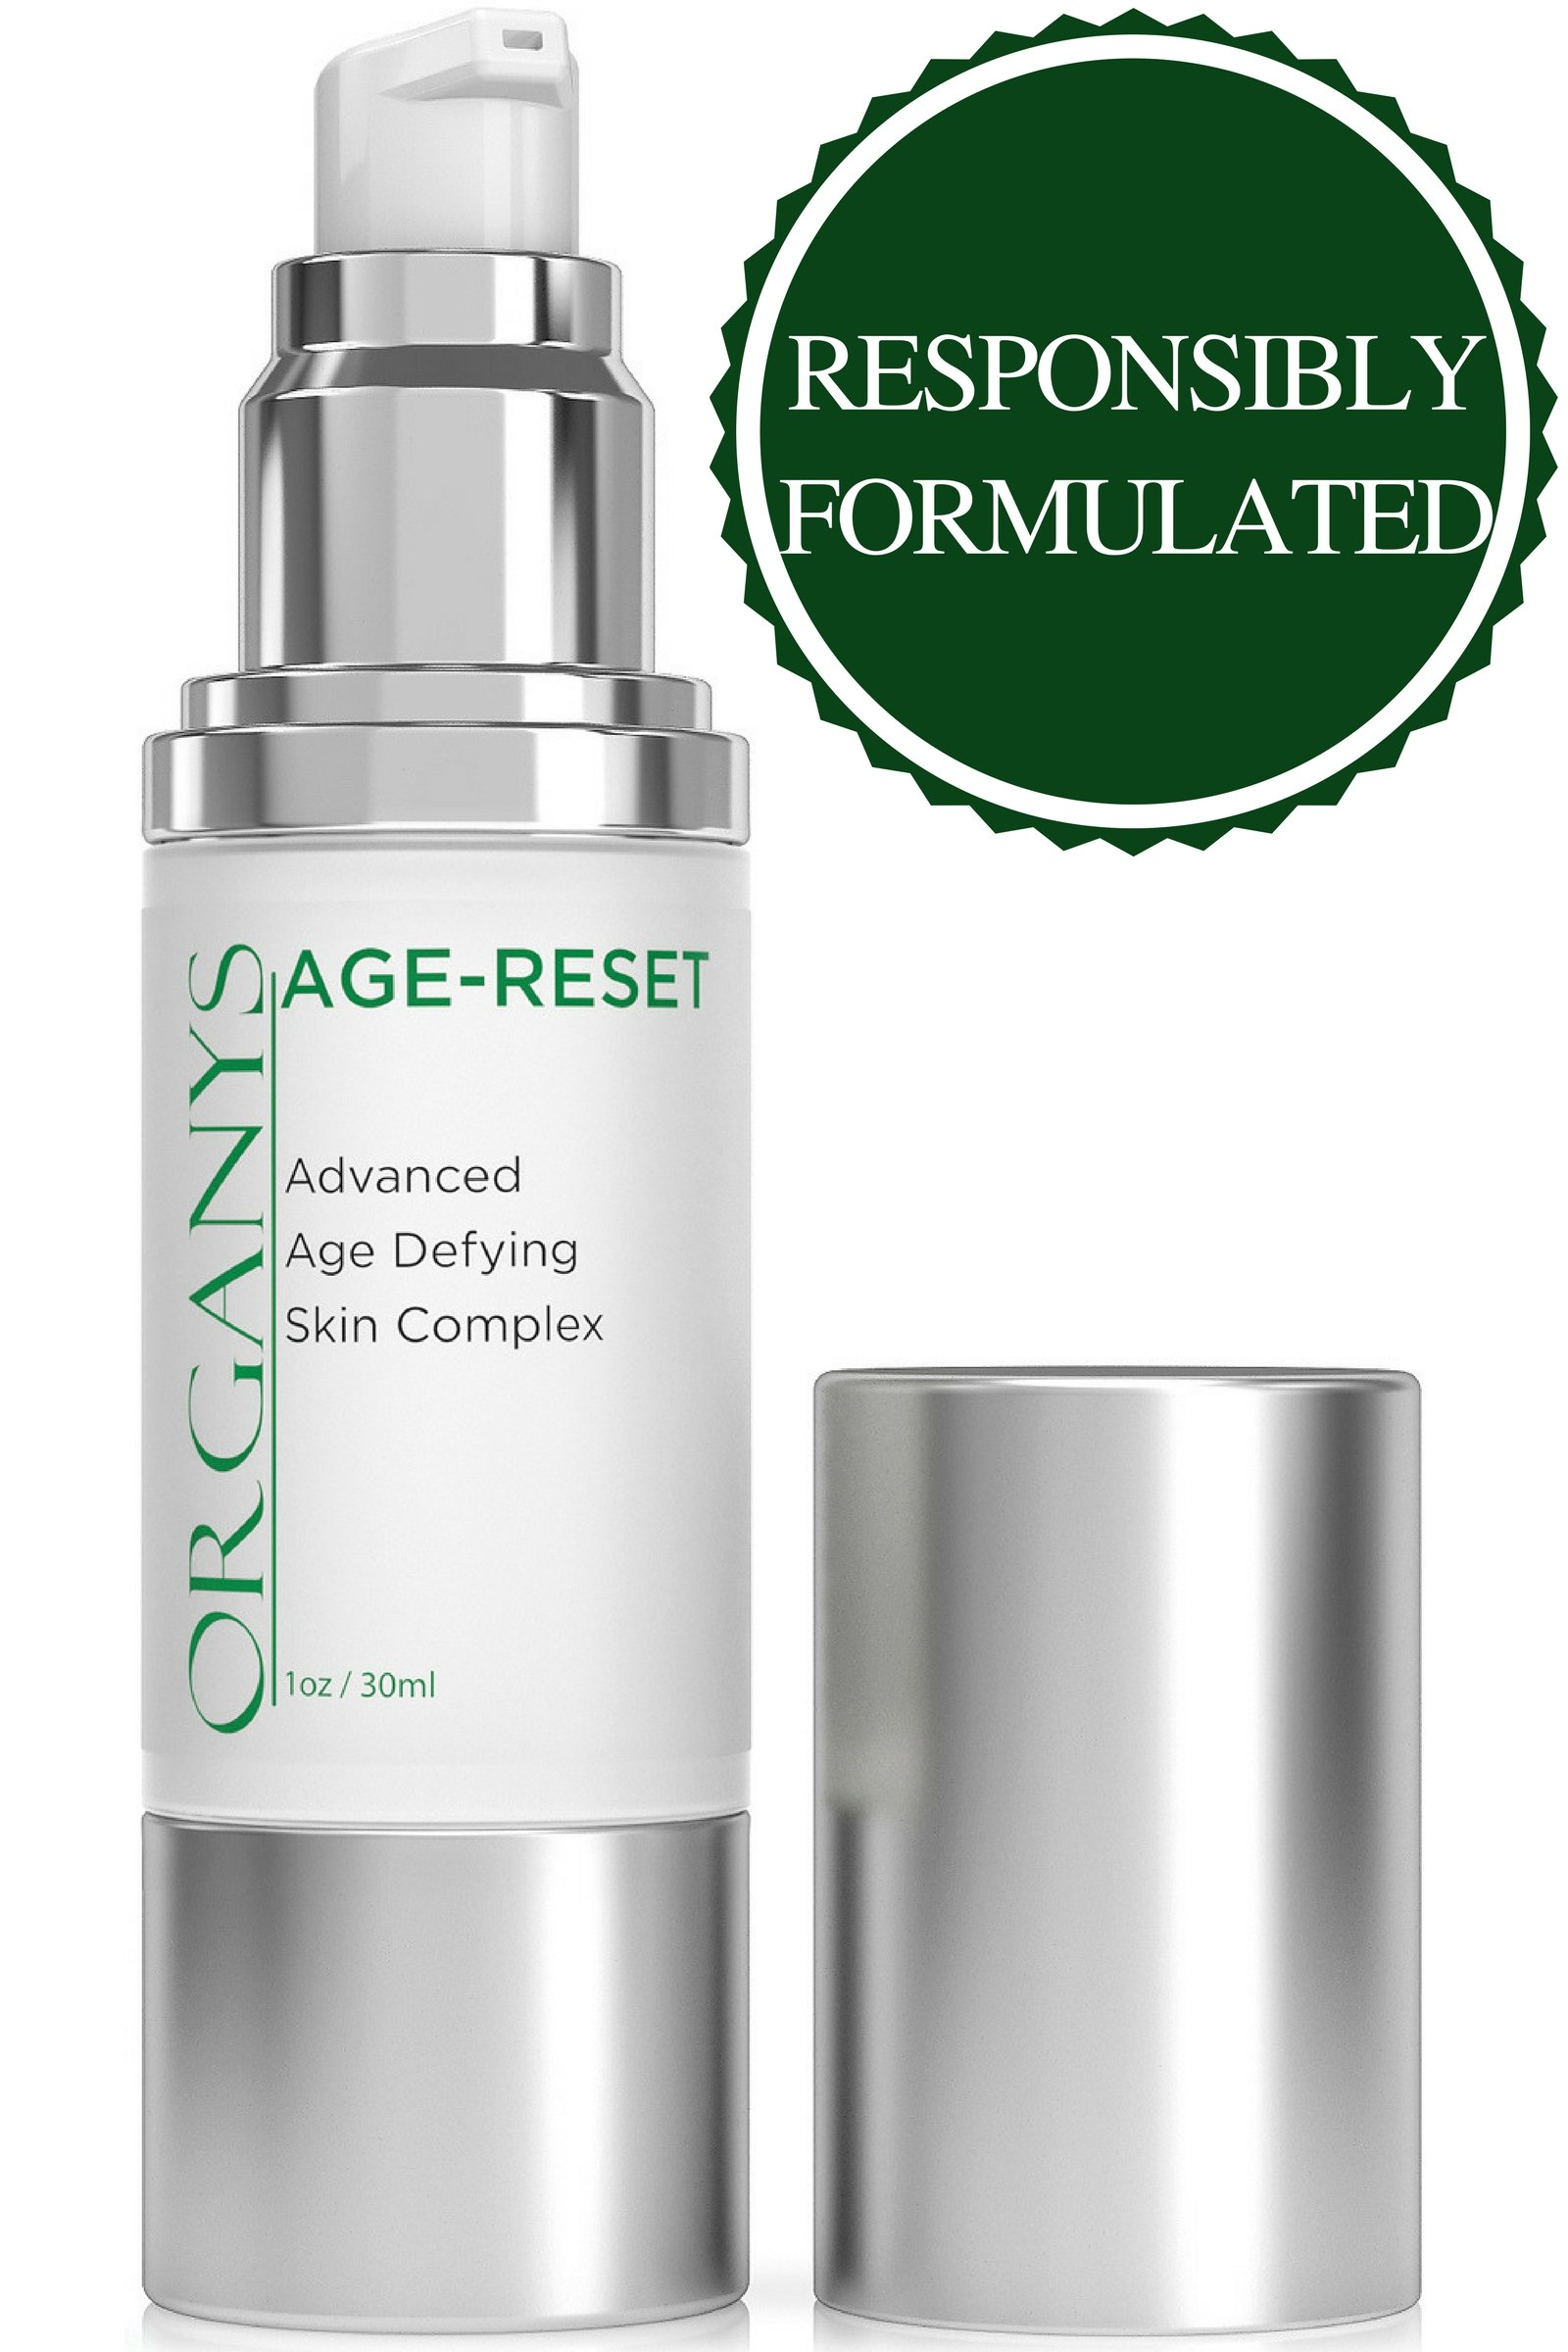 Organys Anti-Aging Powerhouse Moisturizer With Vitamin C Improves The Appearance Of Wrinkles Fine Lines Firmness And Skin Elasticity Gives A Brighter Glowing Face. Anti-Wrinkle Cream